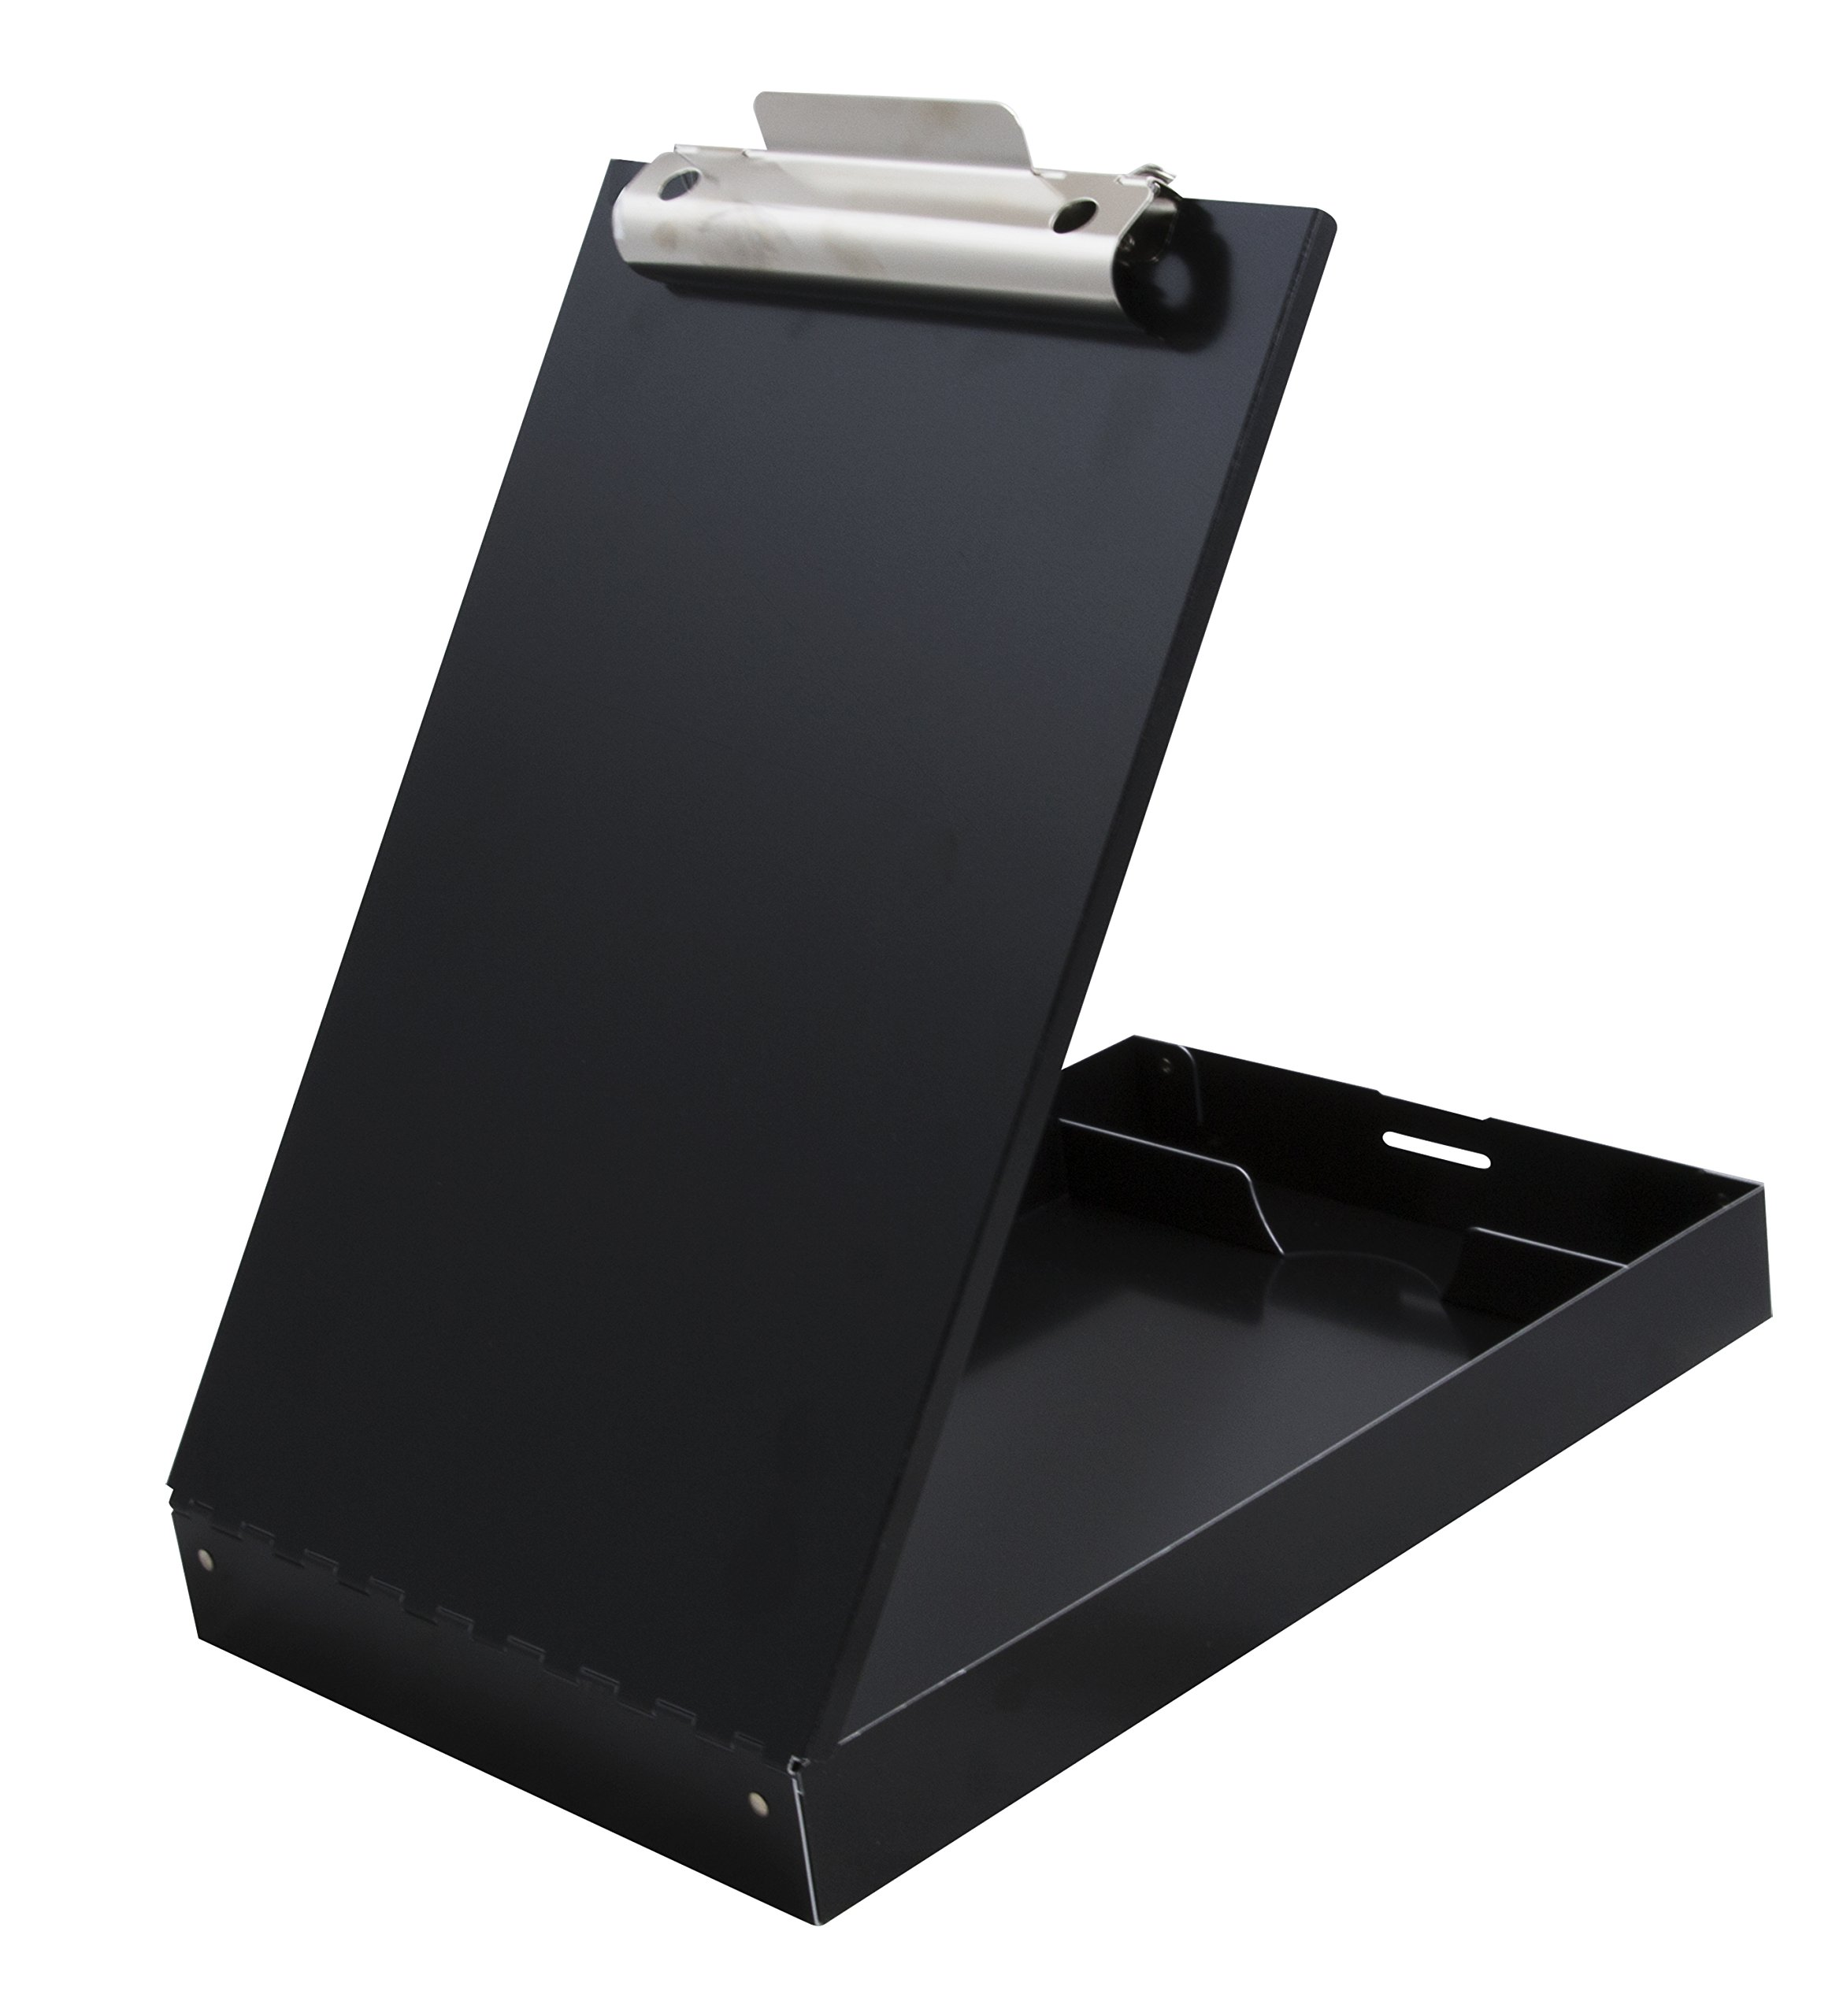 Saunders Redi-Rite Recycled Aluminum Storage Clipboard - Black - Letter Size (11018)